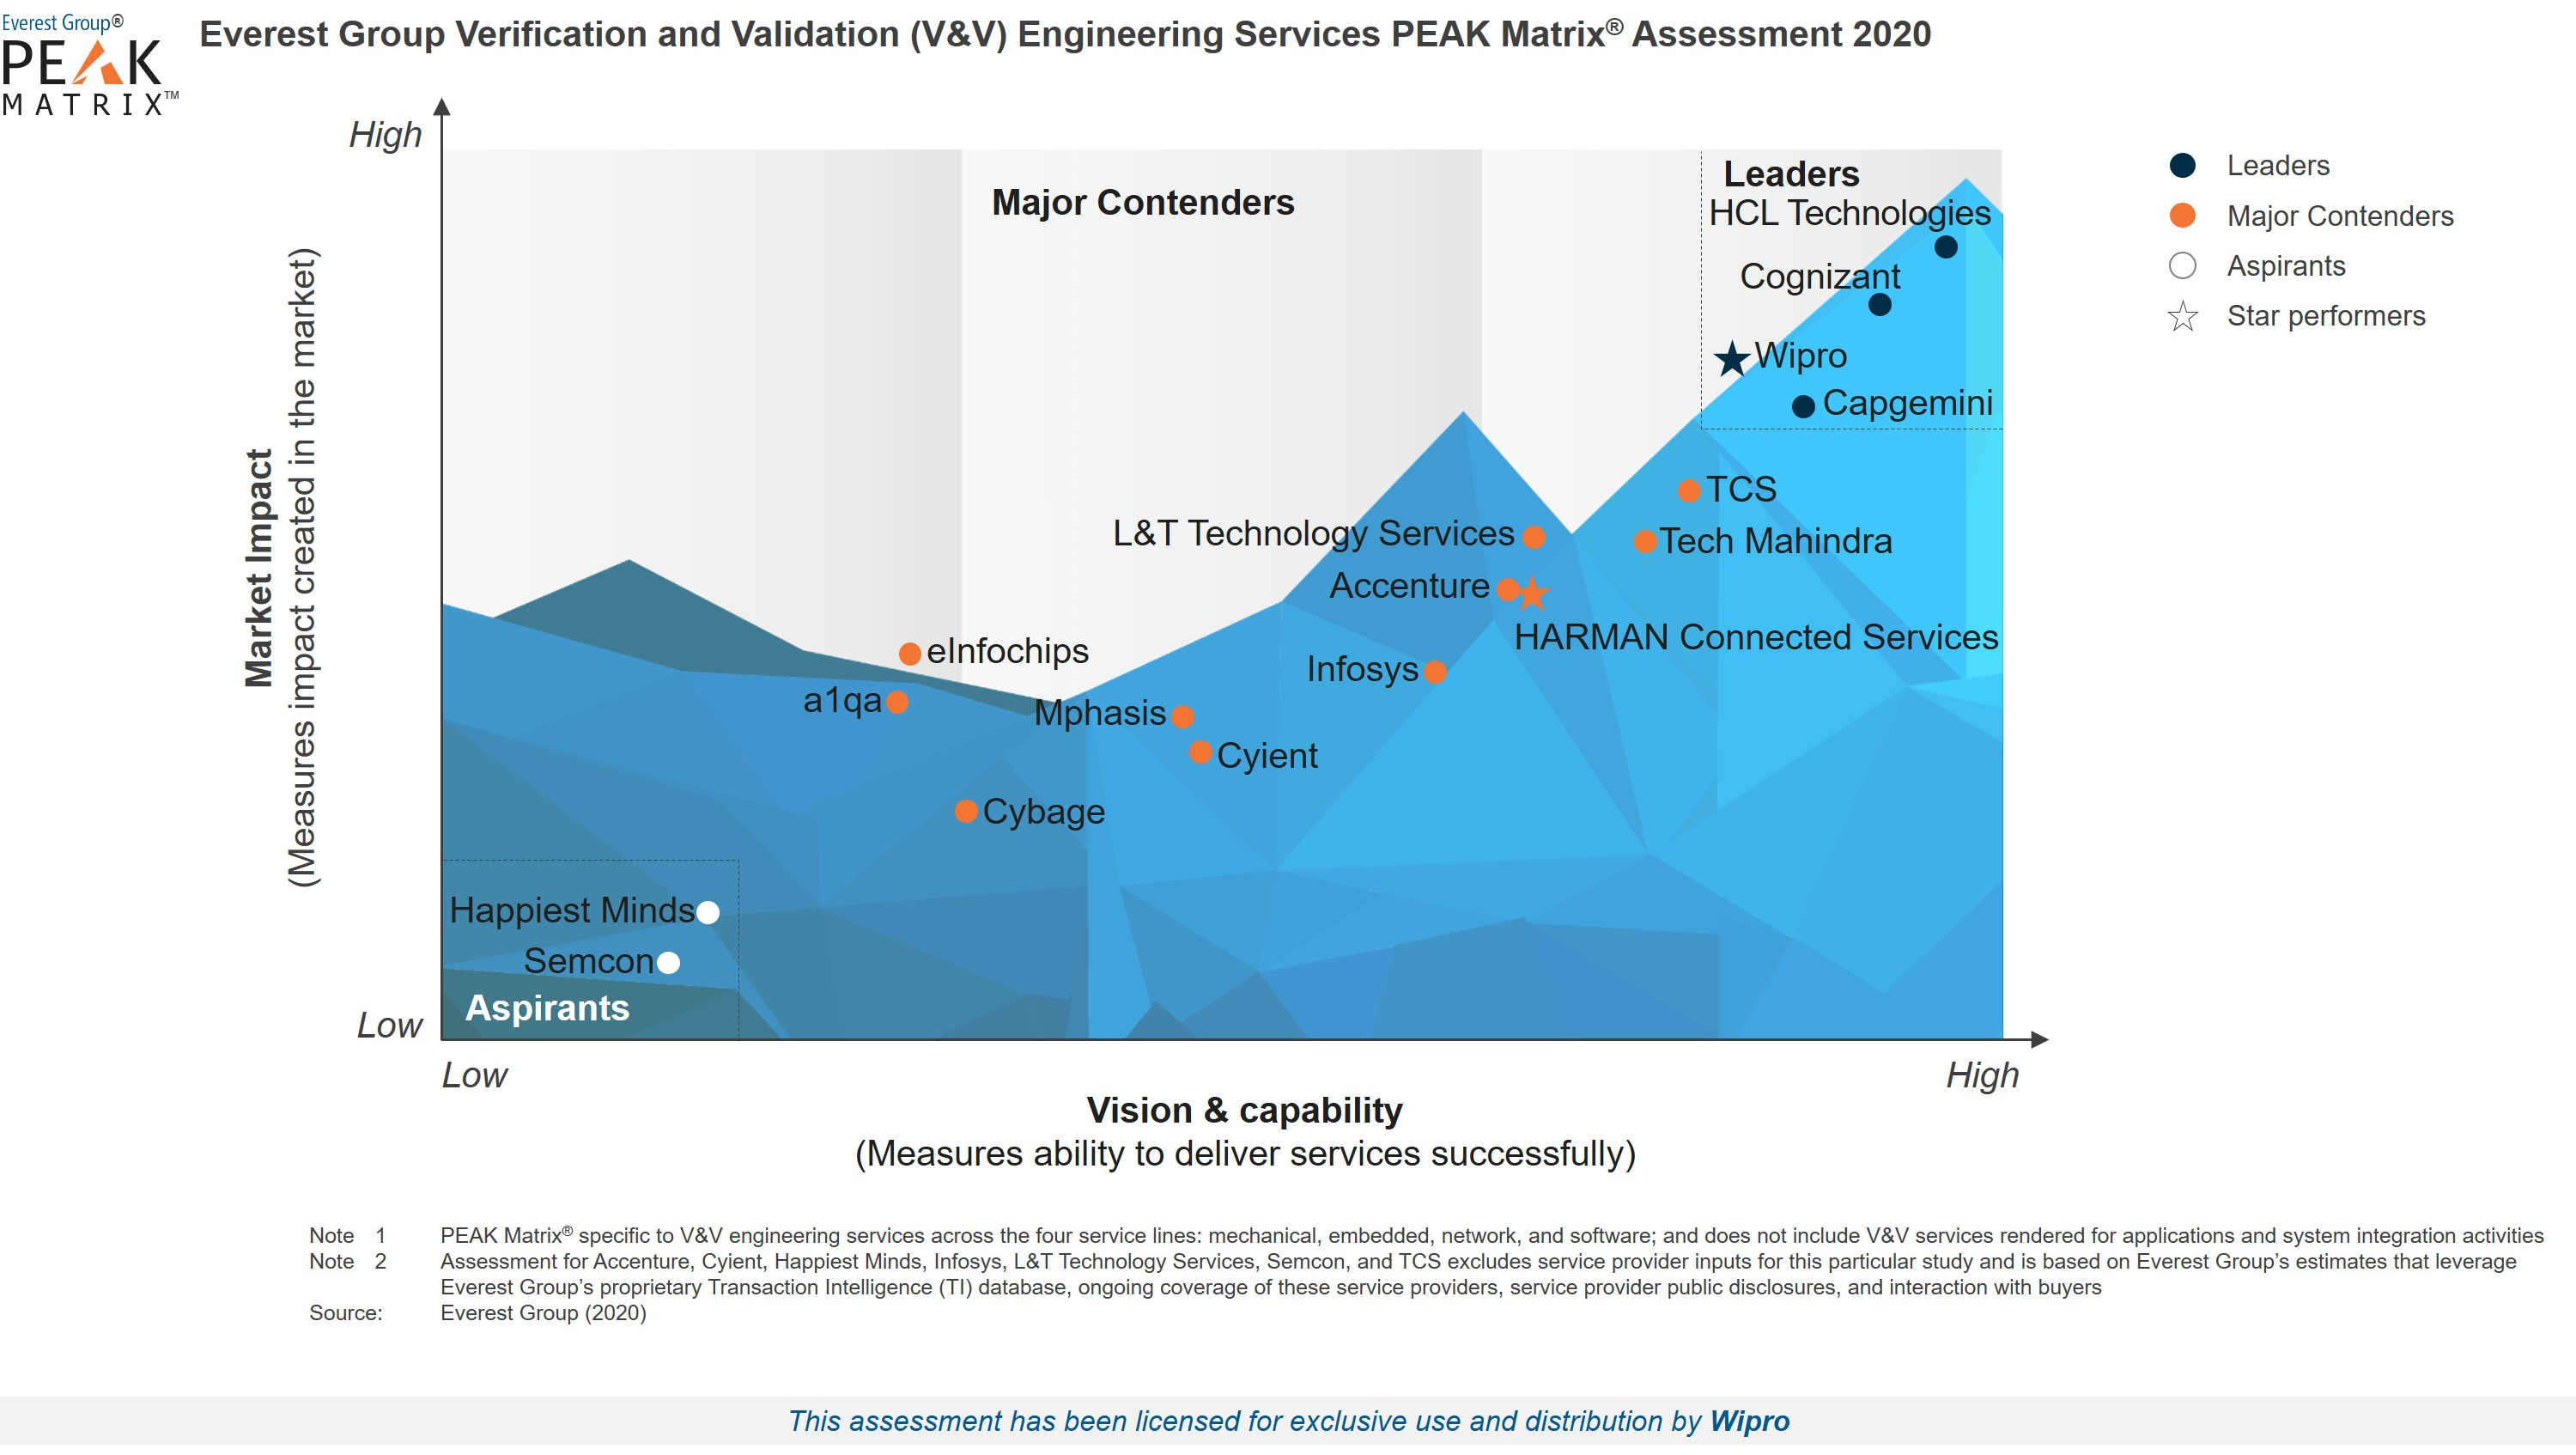 Wipro is a Leader and Star Performer in Verification and Validation Engineering Service Providers 2020